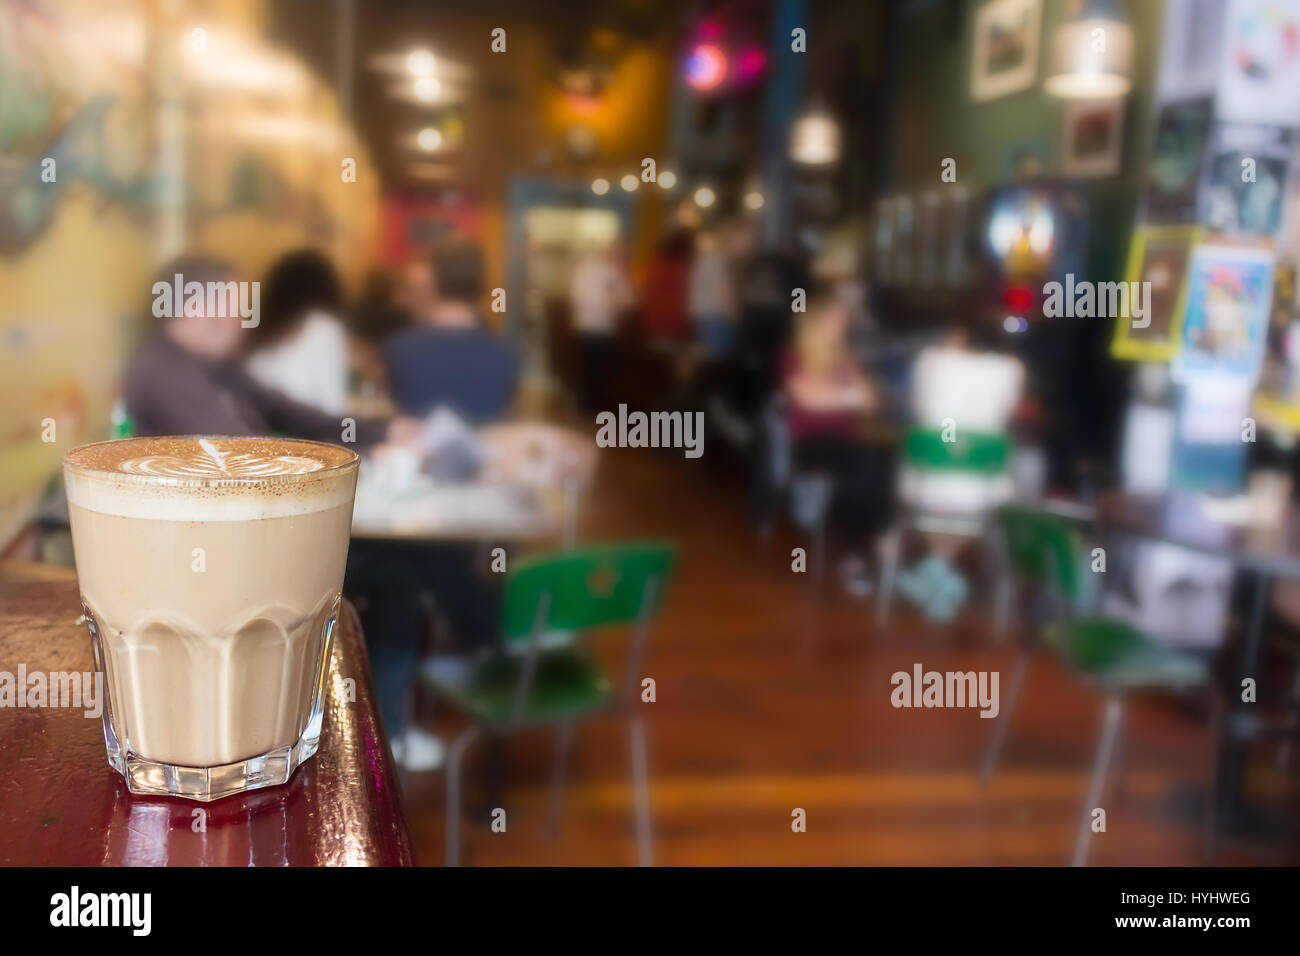 A cappuccino on on a glass closeup, interior people blurred background. - Stock Image